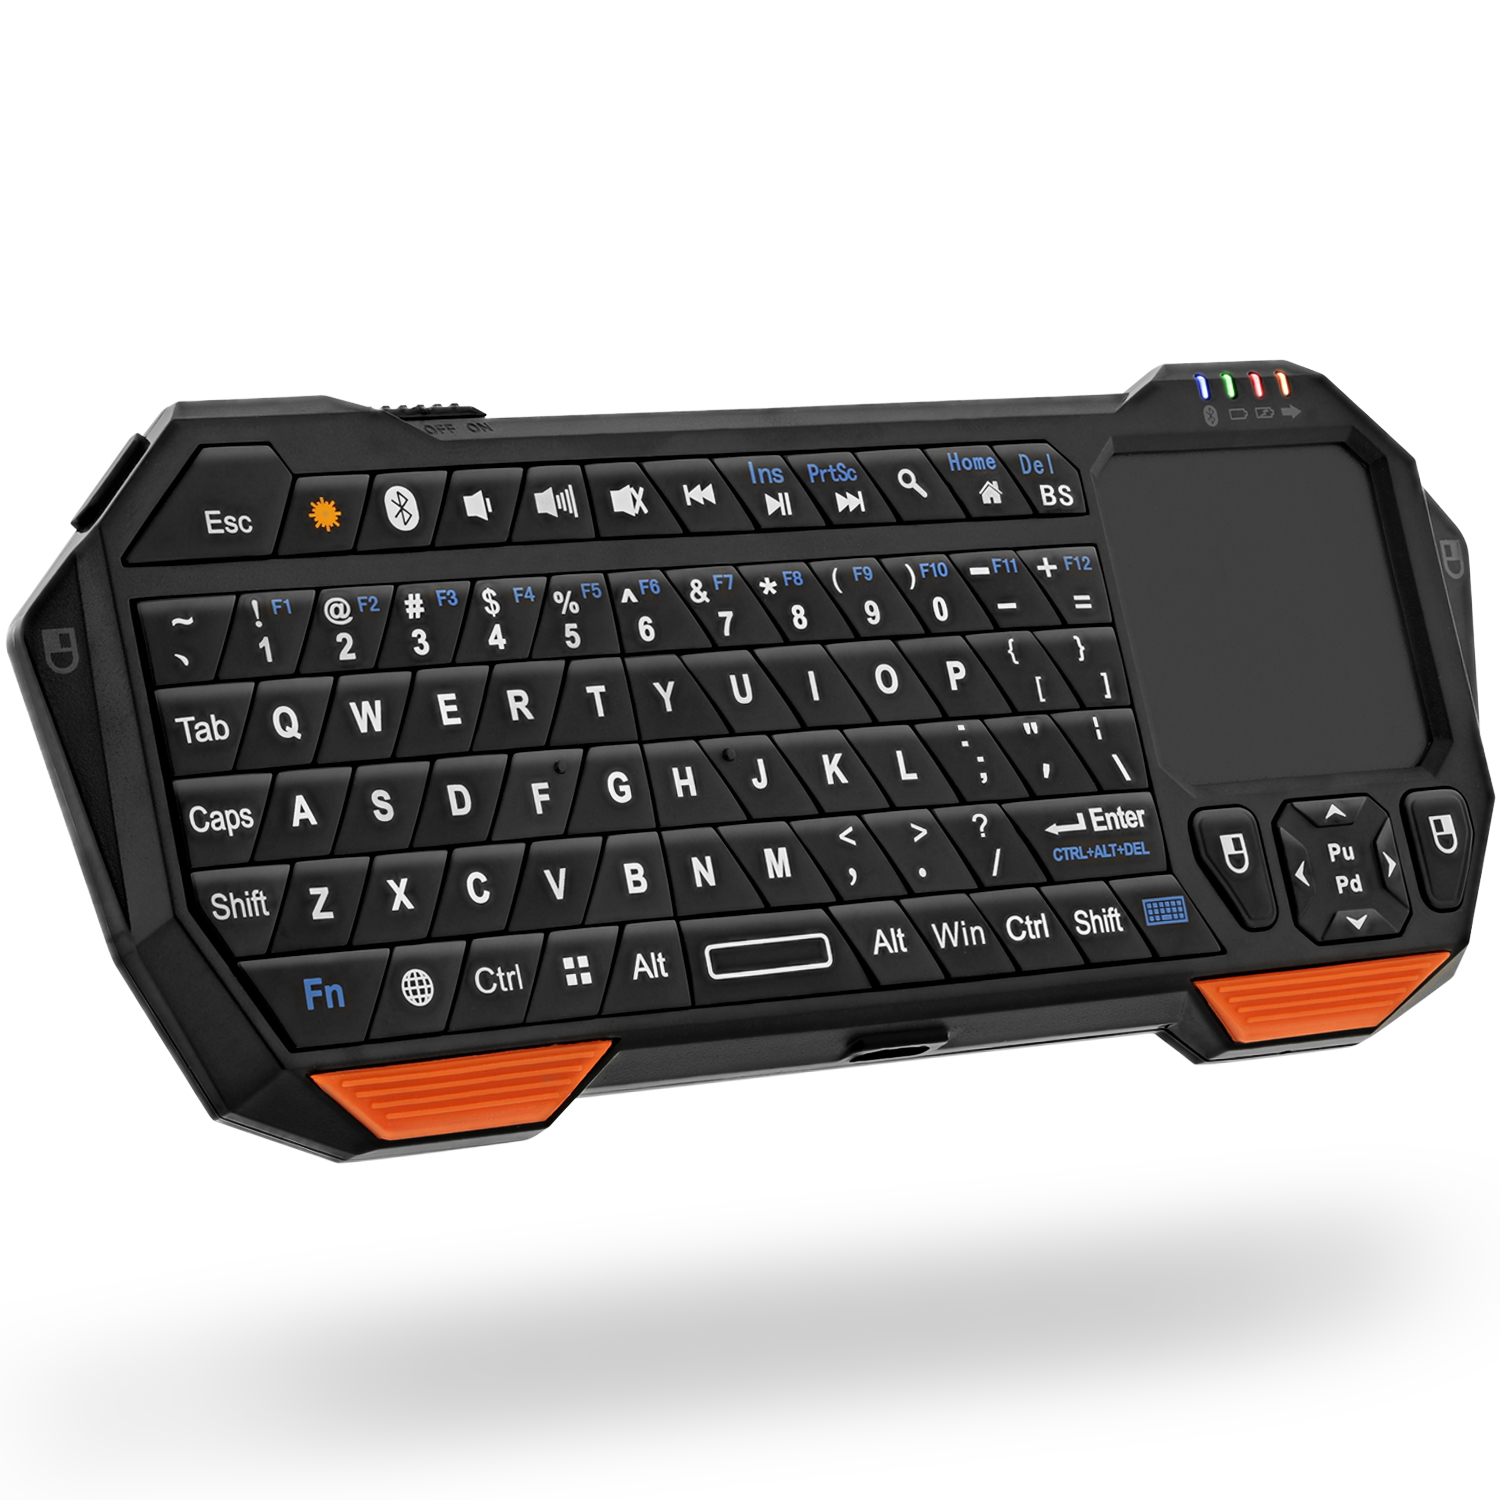 Fosmon Portable Lightweight Mini Wireless Bluetooth Keyboard Controller (QWERTY keypad) with Built-In Touchpad for Apple, Android, Windows Smartphones, Tablets, PS4, Laptop, Notebook (Black & Orange)